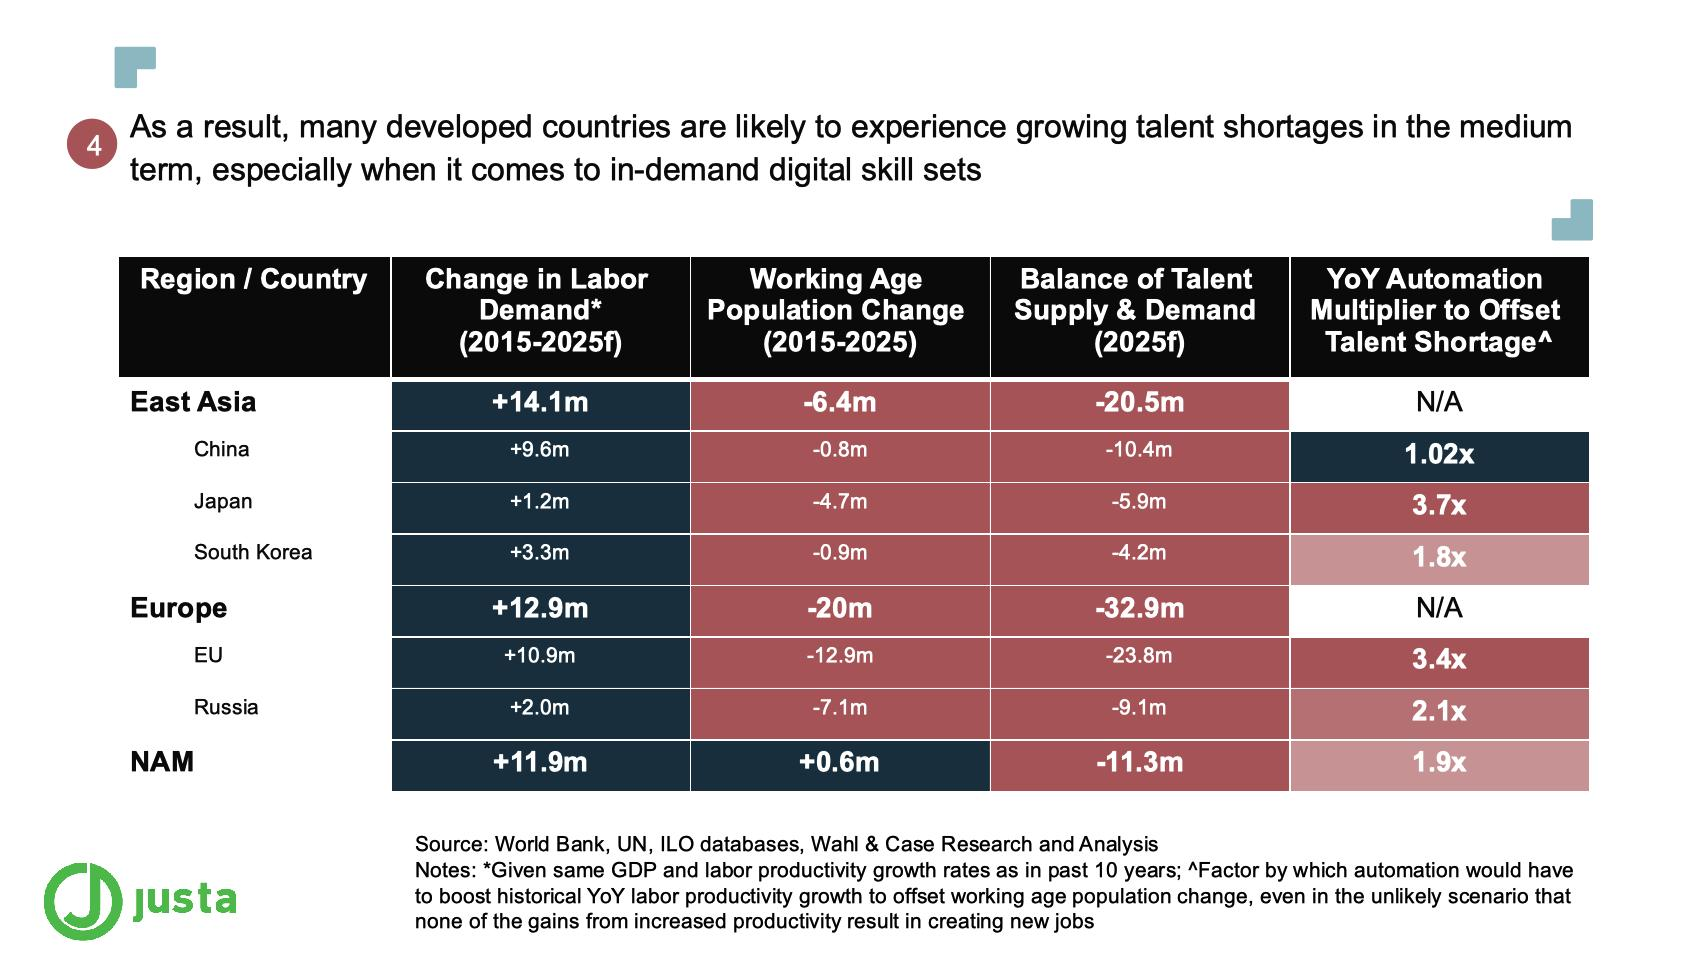 As a result, many developed countries are likely to experience growing talent shortages in the medium term, especially when it comes to in-demand digital skill sets